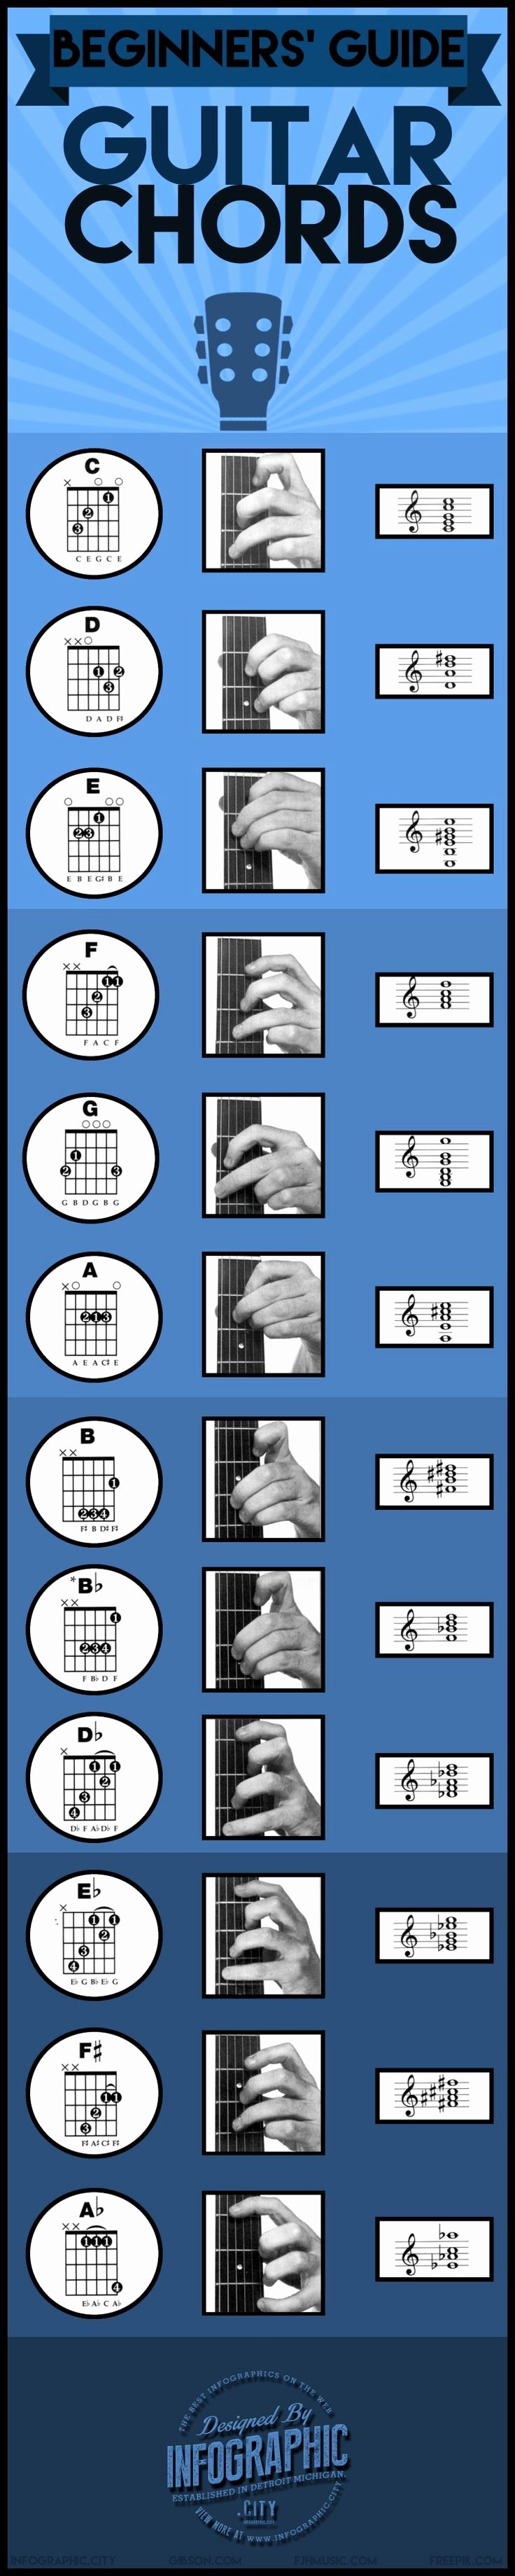 Guitar Chords for Beginners Lovely A Beginners Guide to Guitar Chords Infographic